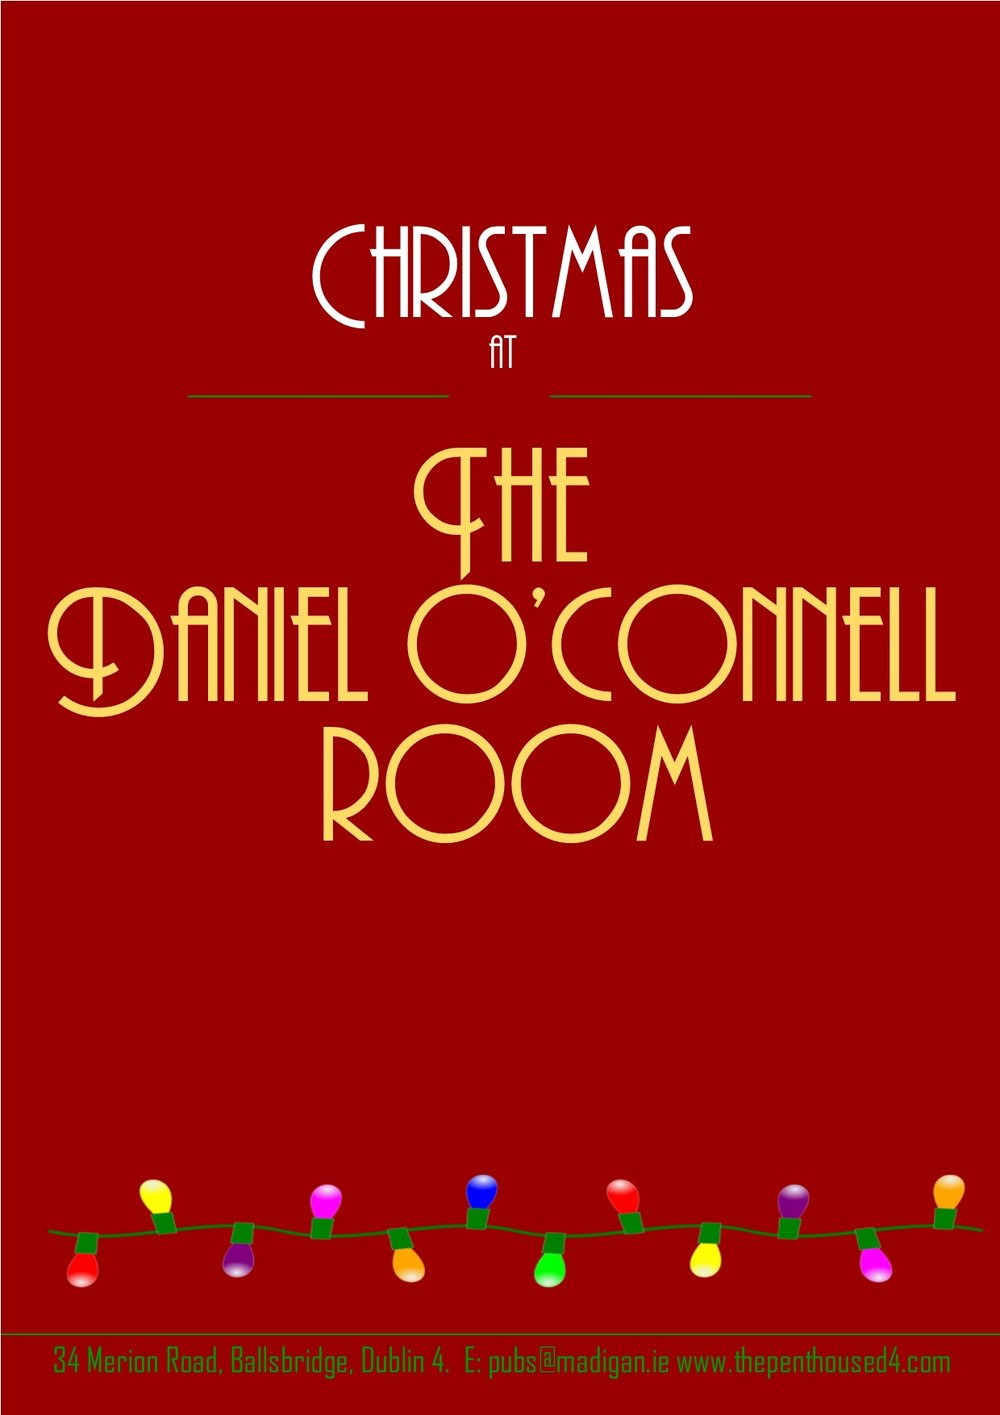 Christmas in The Daniel O'Connell Room 2016 Page 1.jpg